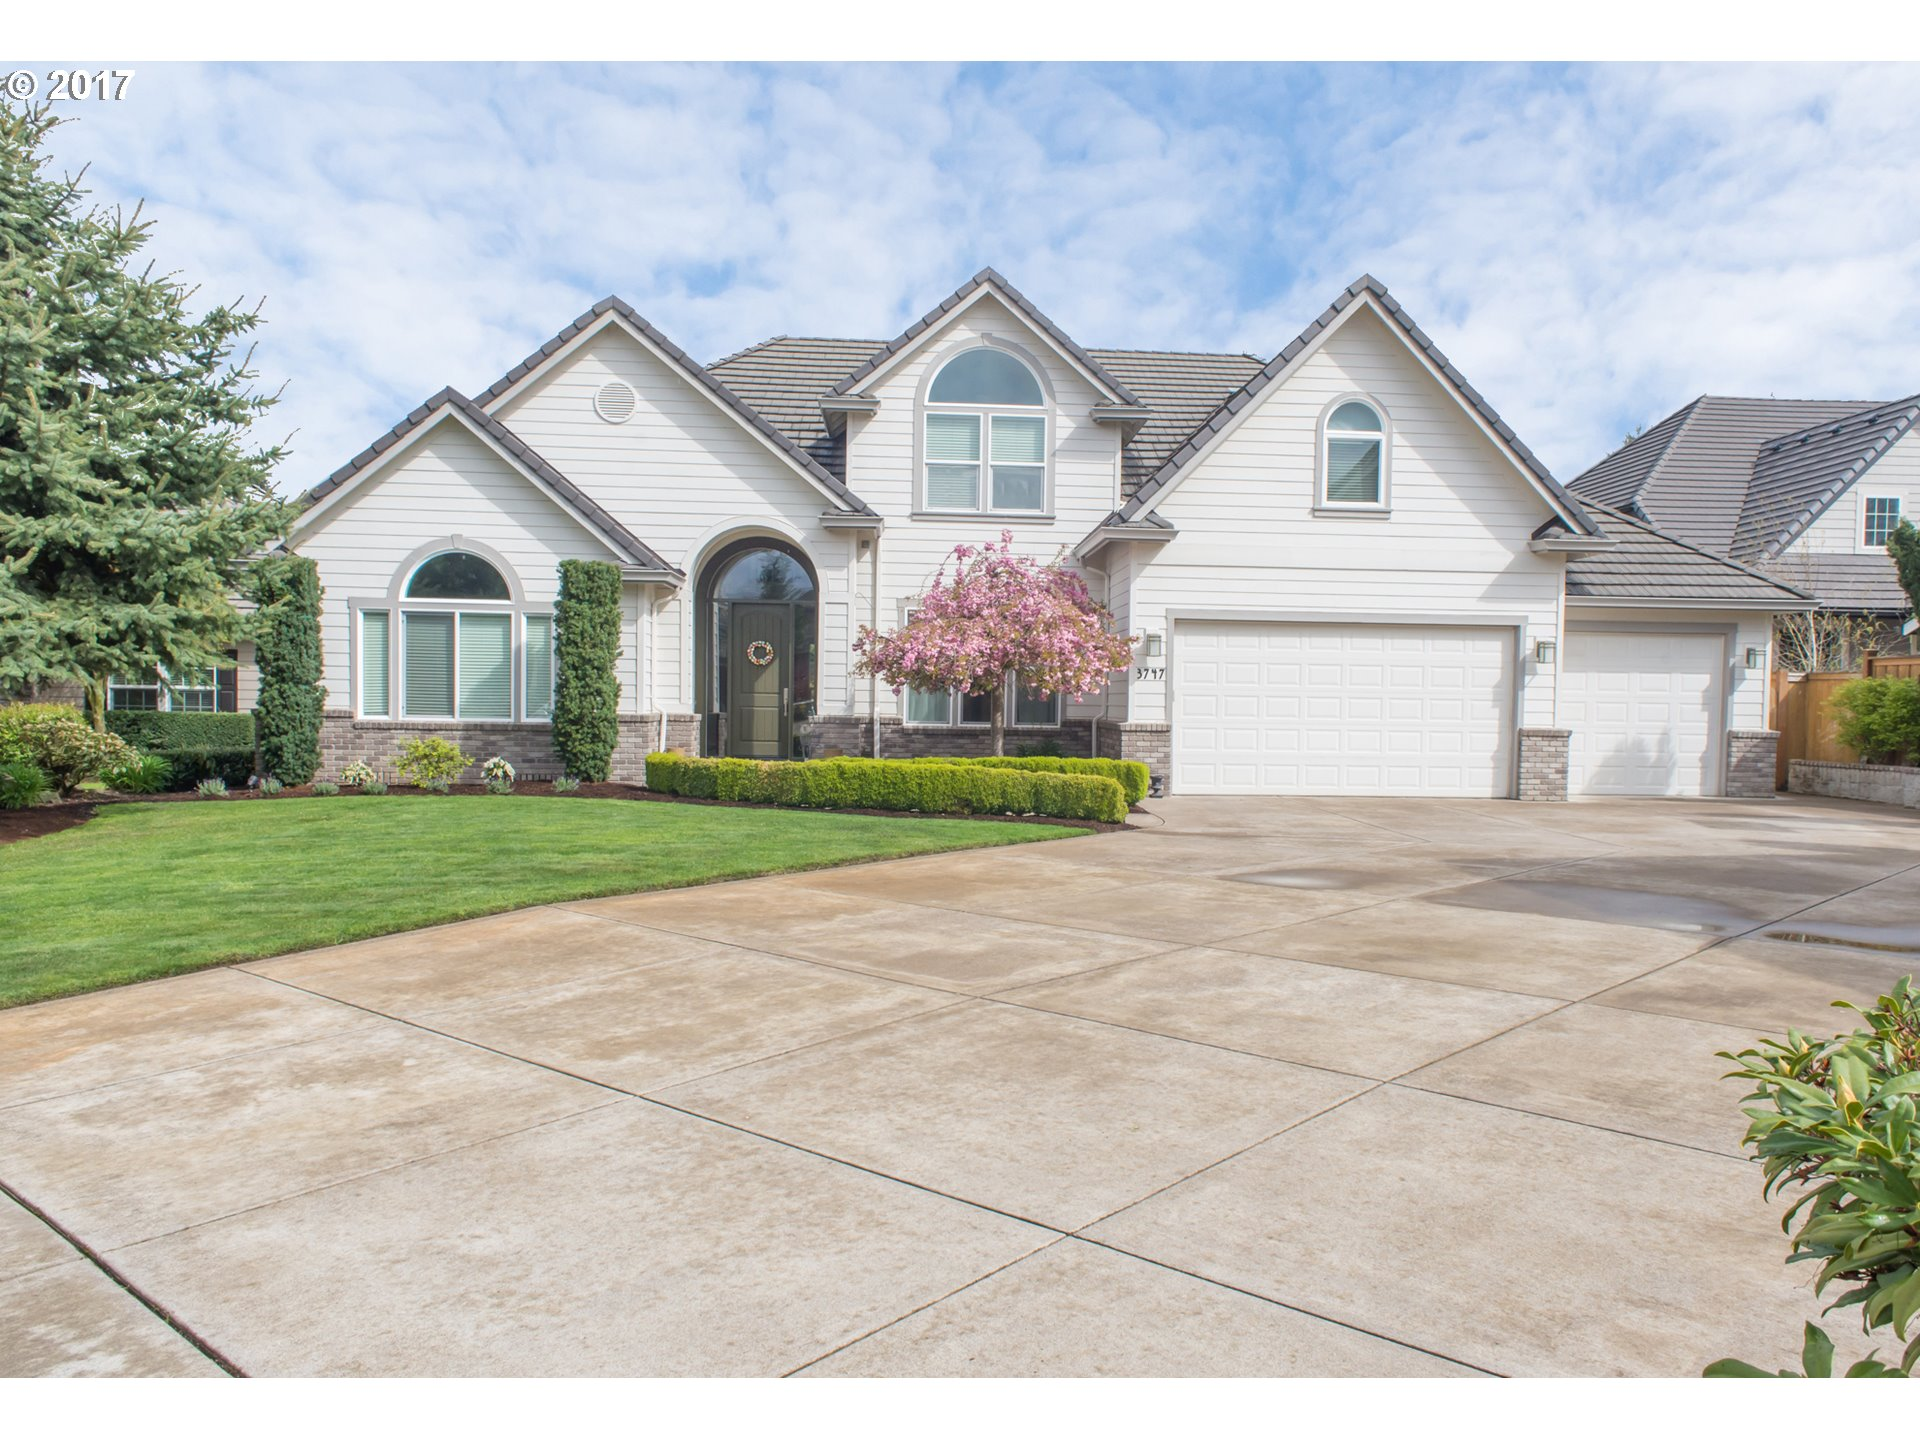 3747 MARCELLA DR, Eugene, OR 97408